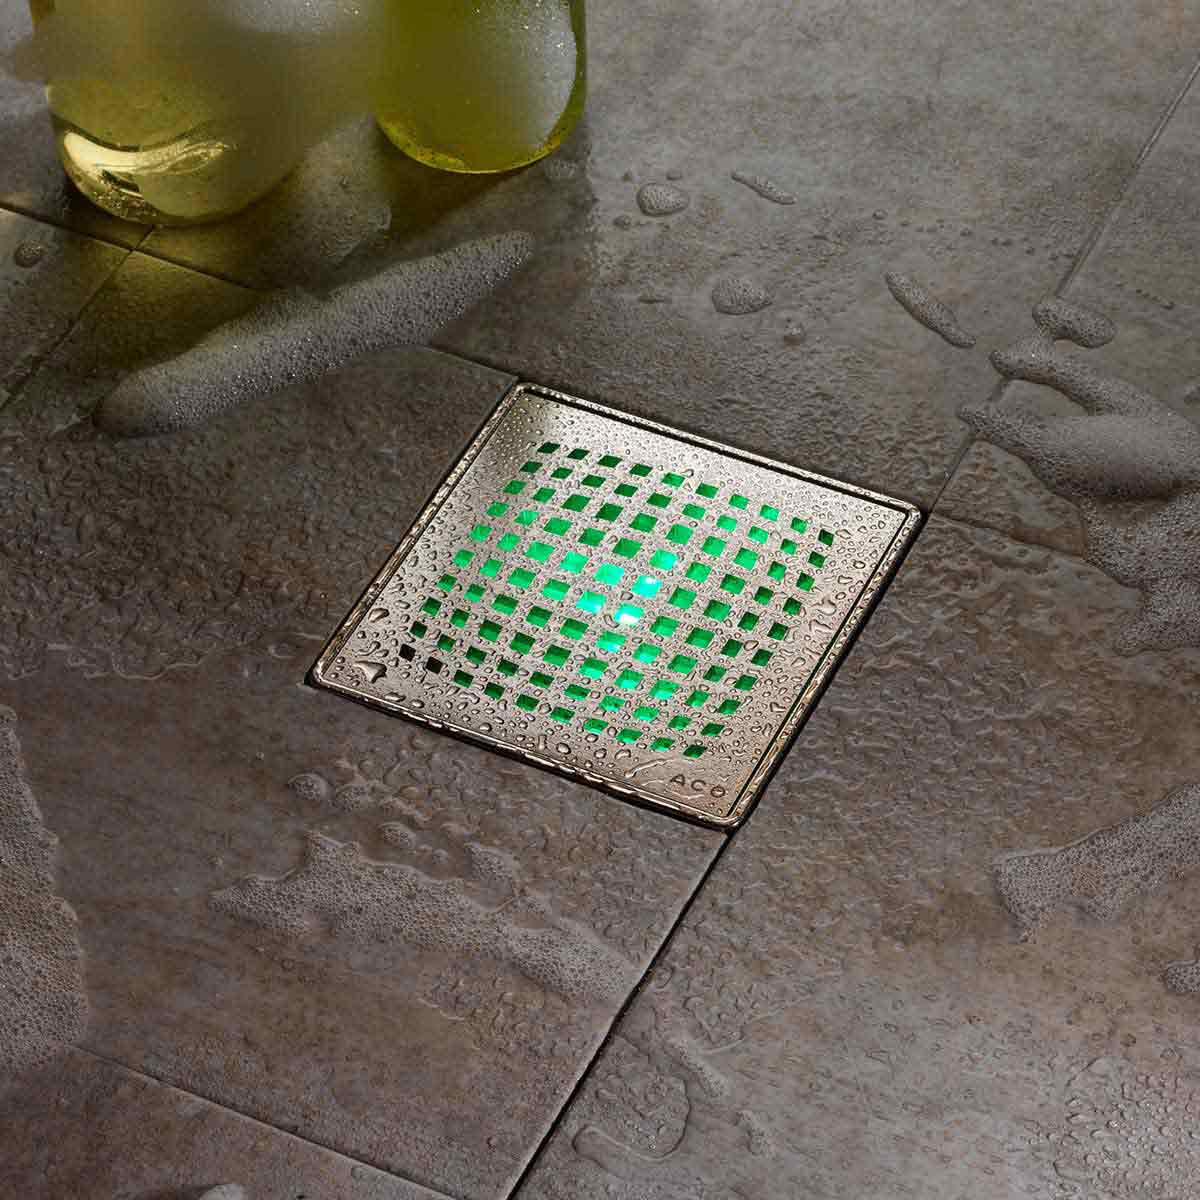 37258 Green Aco Shower Point Lightline